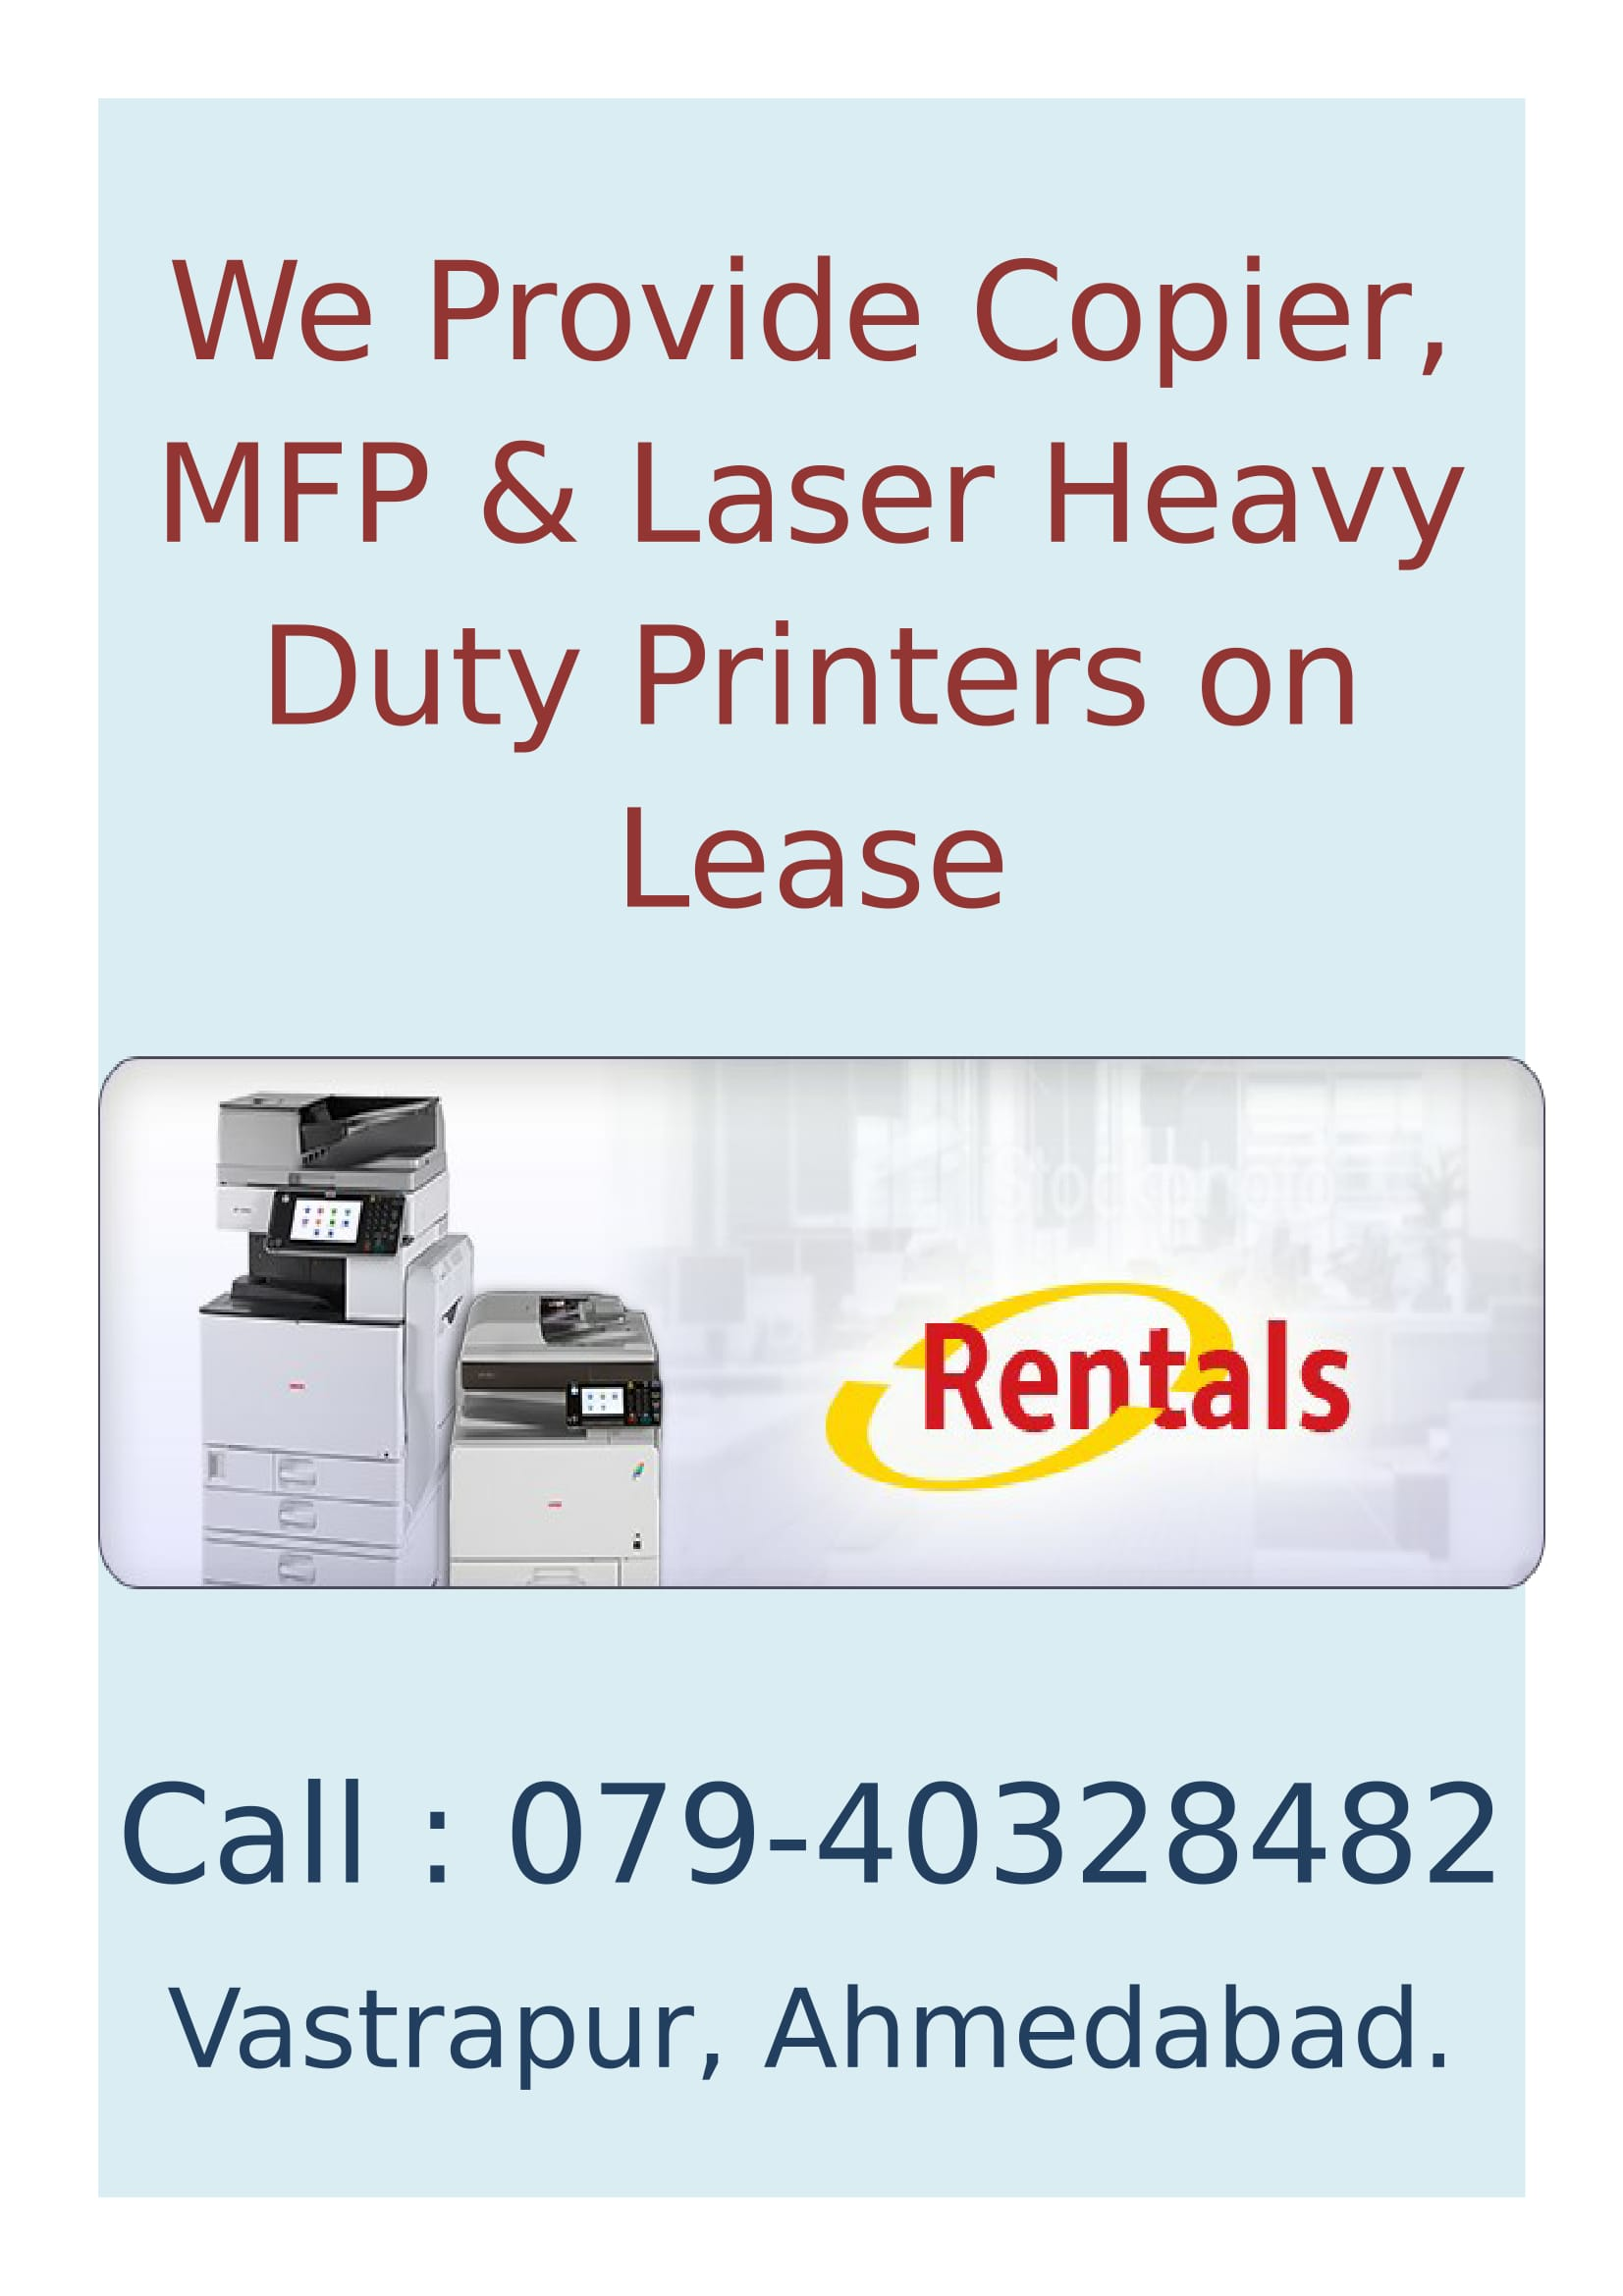 We provide Canon, HP and Brother Printer and Copiers on Rental.